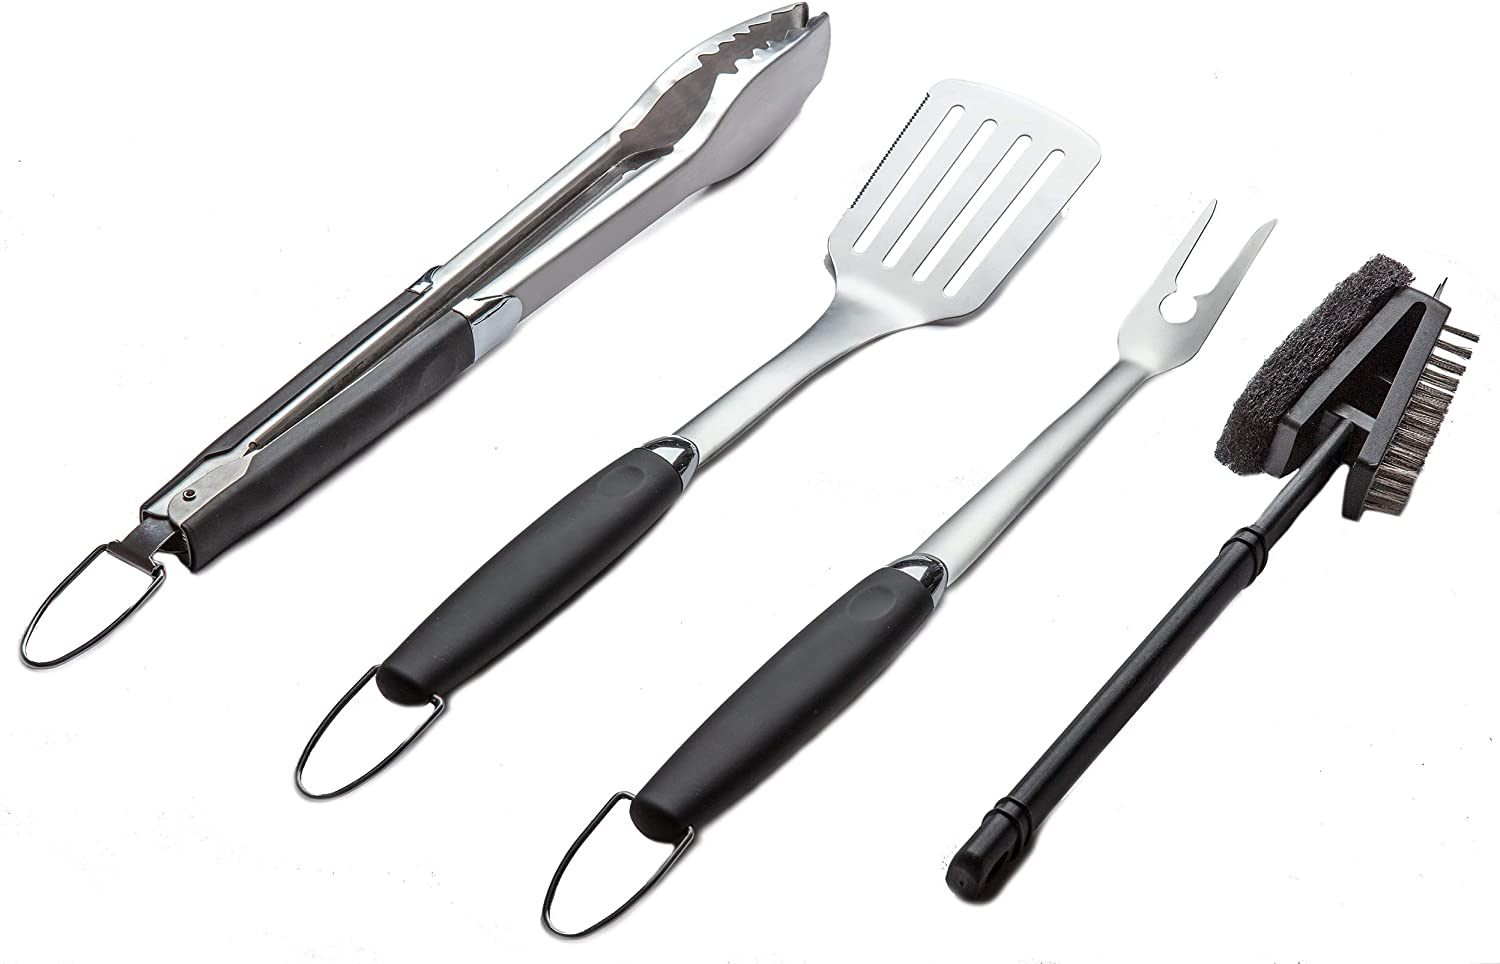 Simplistex Stainless Steel BBQ Grill Tool Set w/Tongs, Spatula, Fork and  Brush - Accessories for Outdoor Barbecue Grills